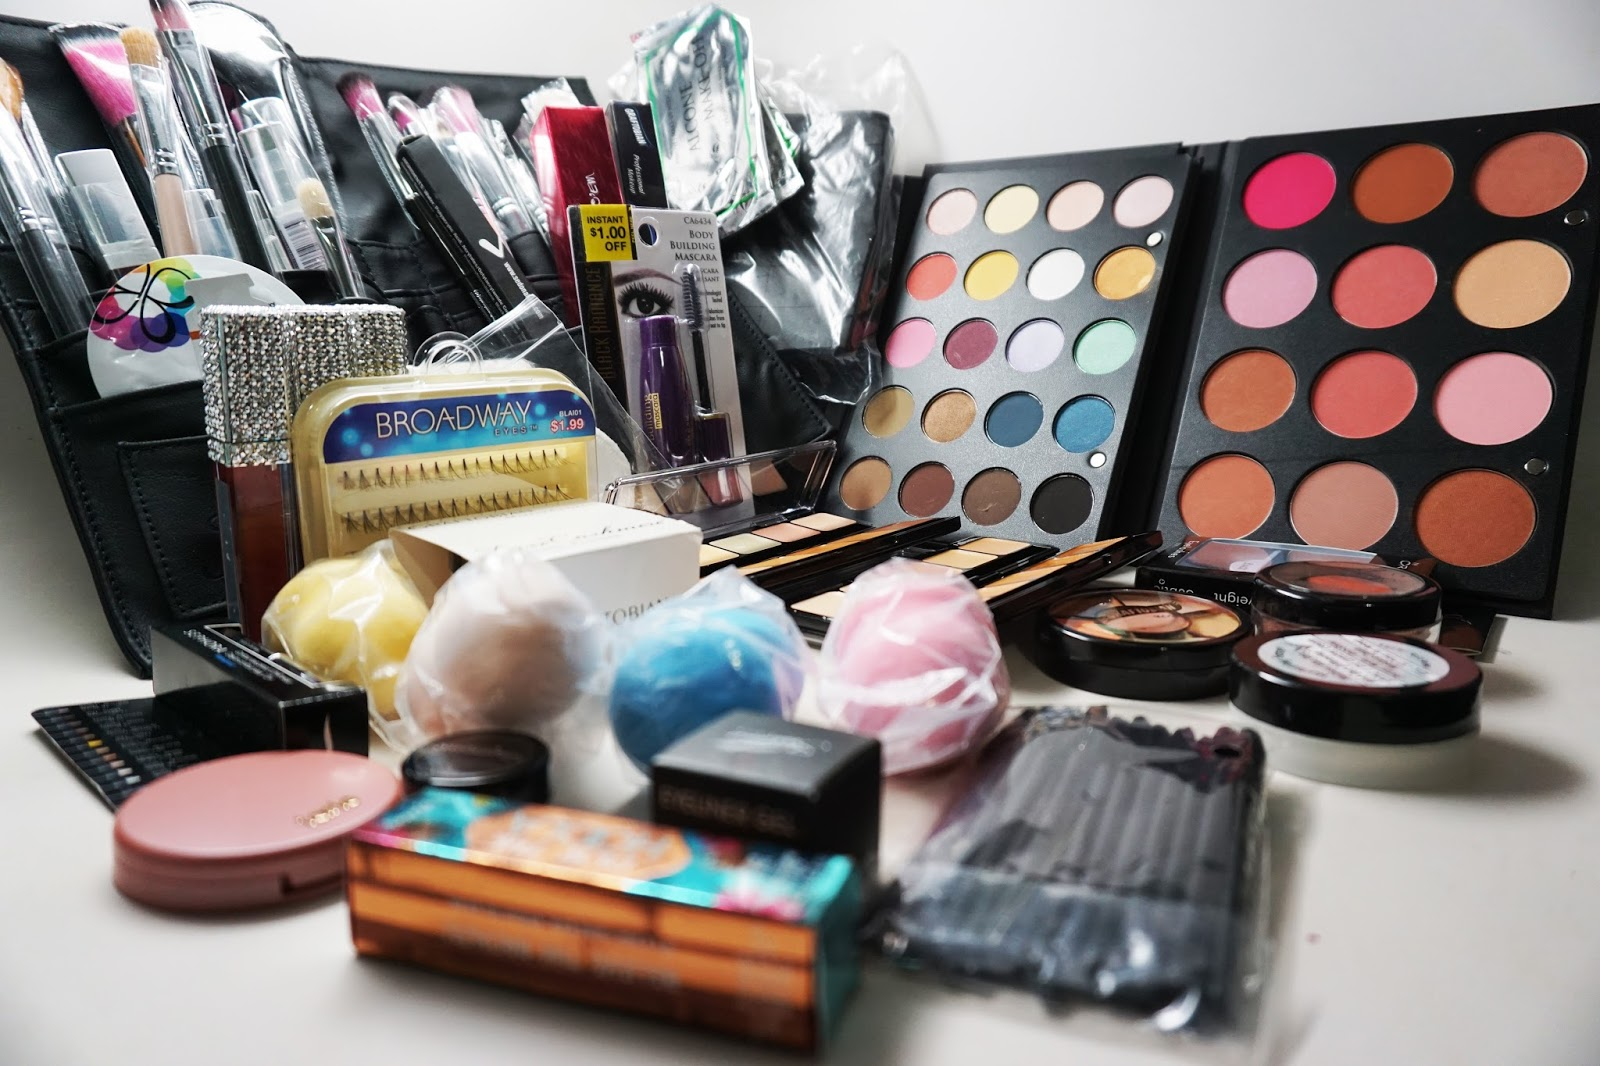 Today I'll be giving a very lucky Makeup Artist their very own, professional makeup kit to kick start their career.